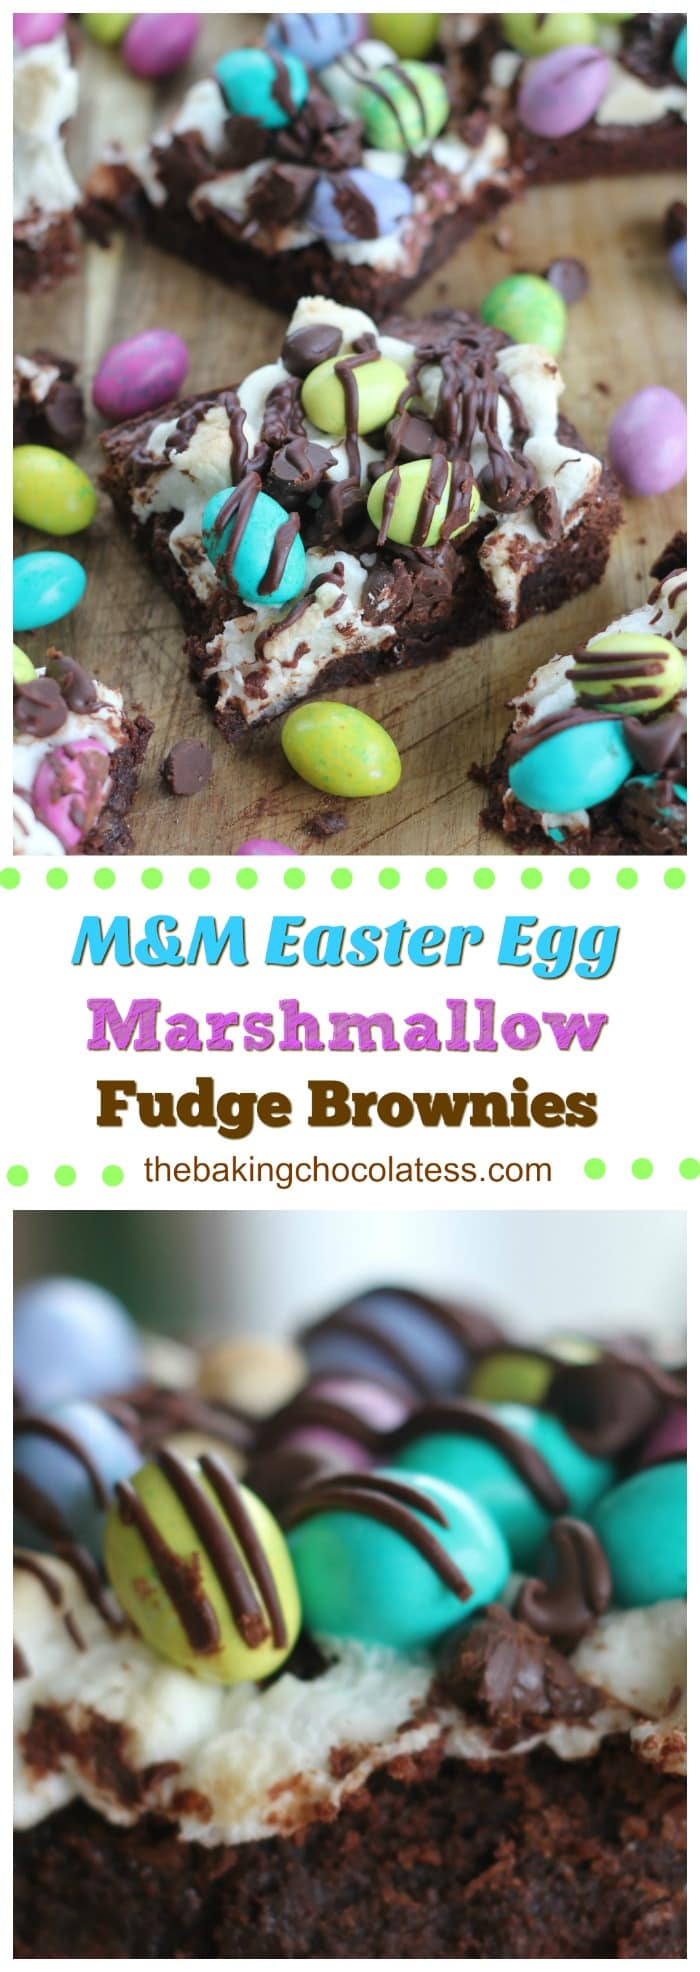 M&M Easter Egg Marshmallow Fudge Brownies -